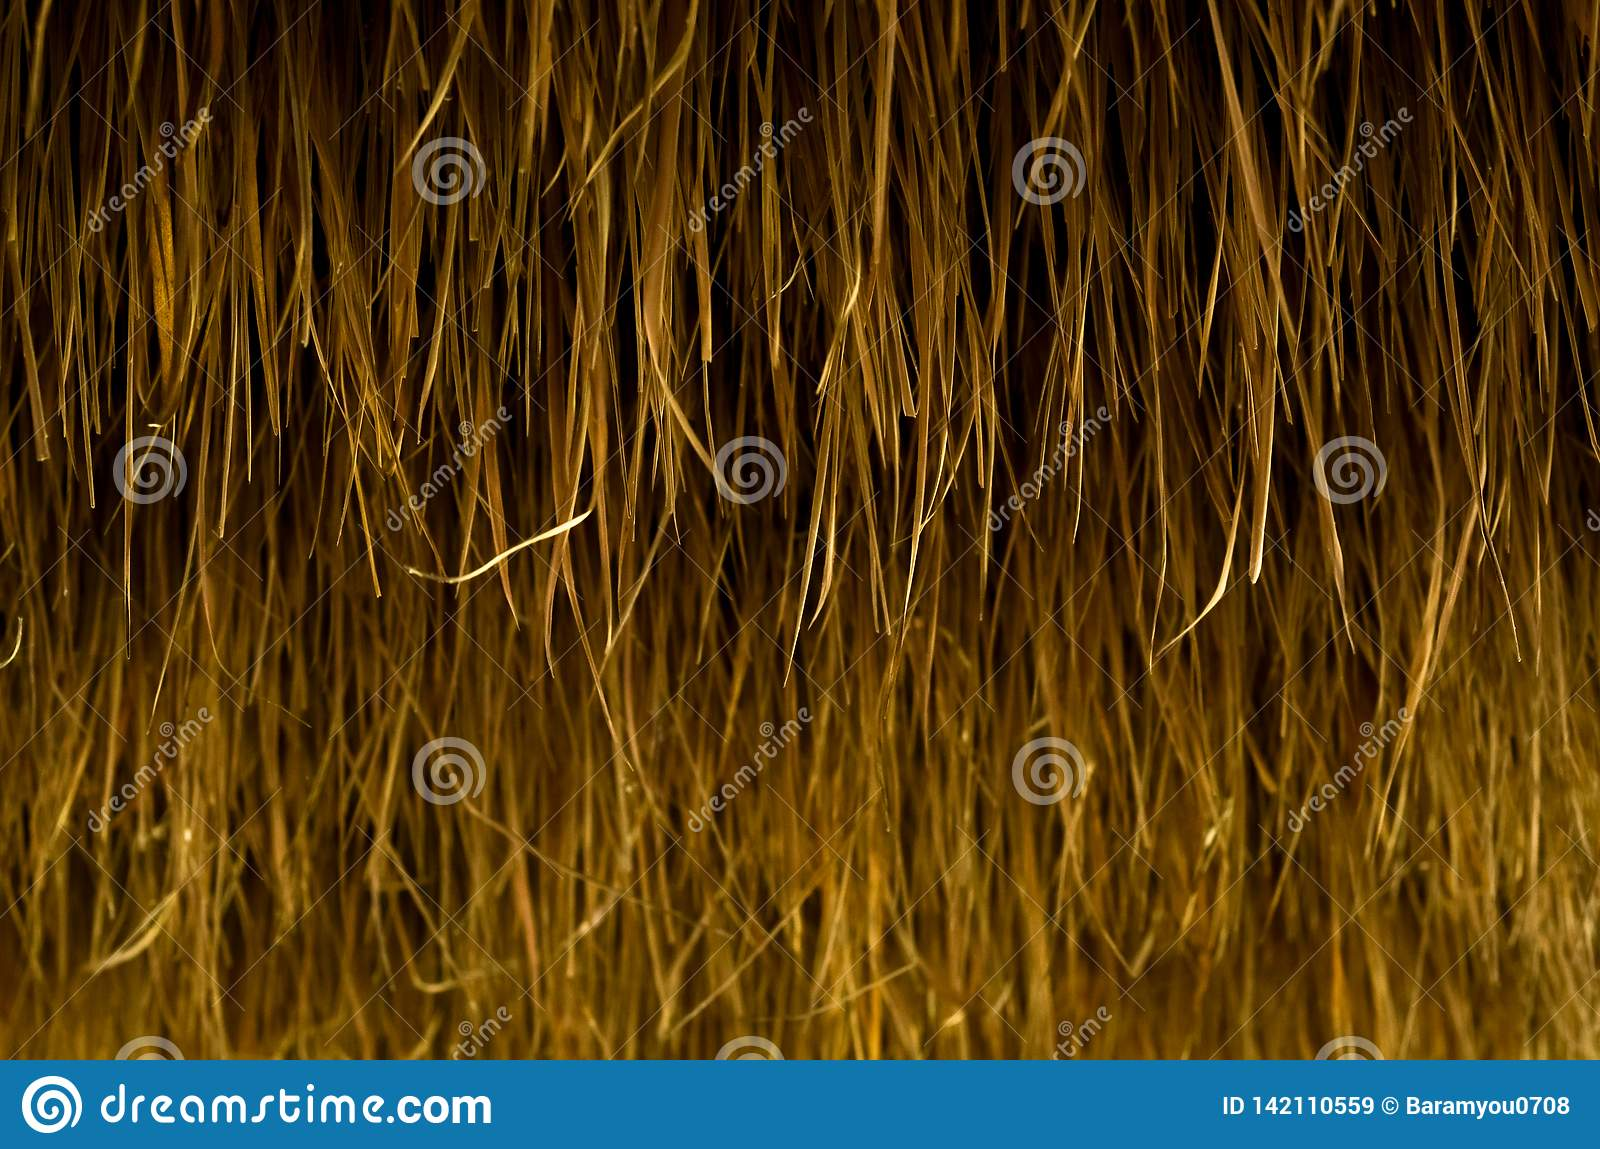 Background and texture photo of dry blady grass